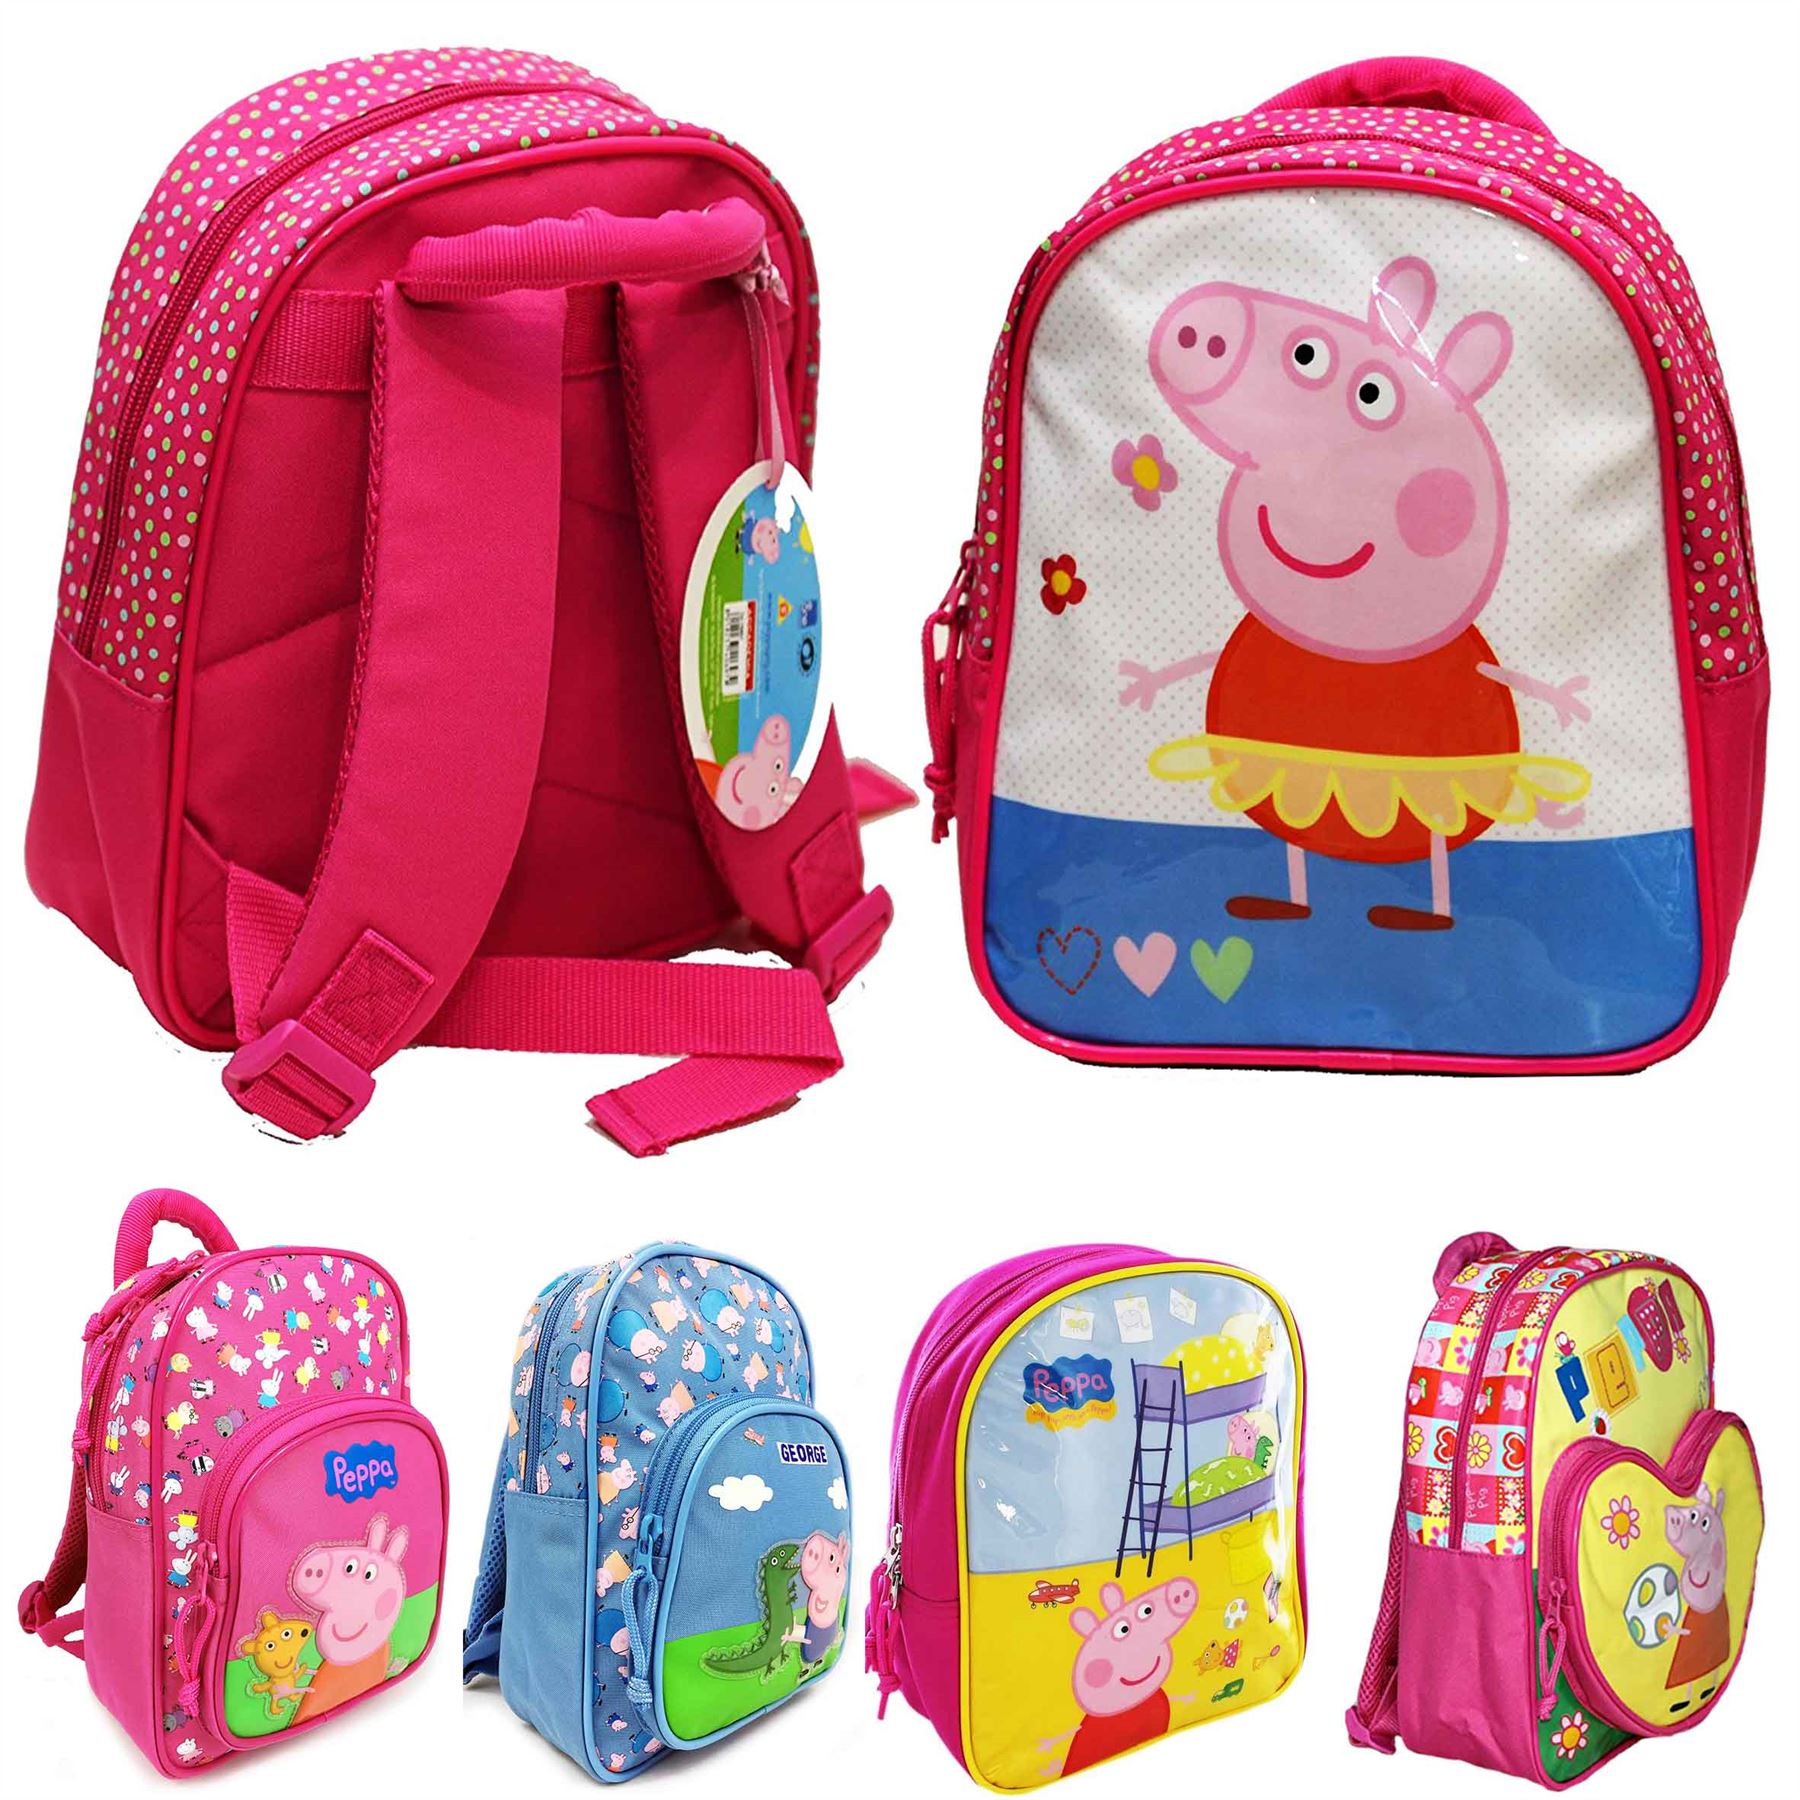 Image is loading Accademia-PEPPA-PIG-3D-PREMIUM-Kids-Backpack-Children- 8c1769fd1660c